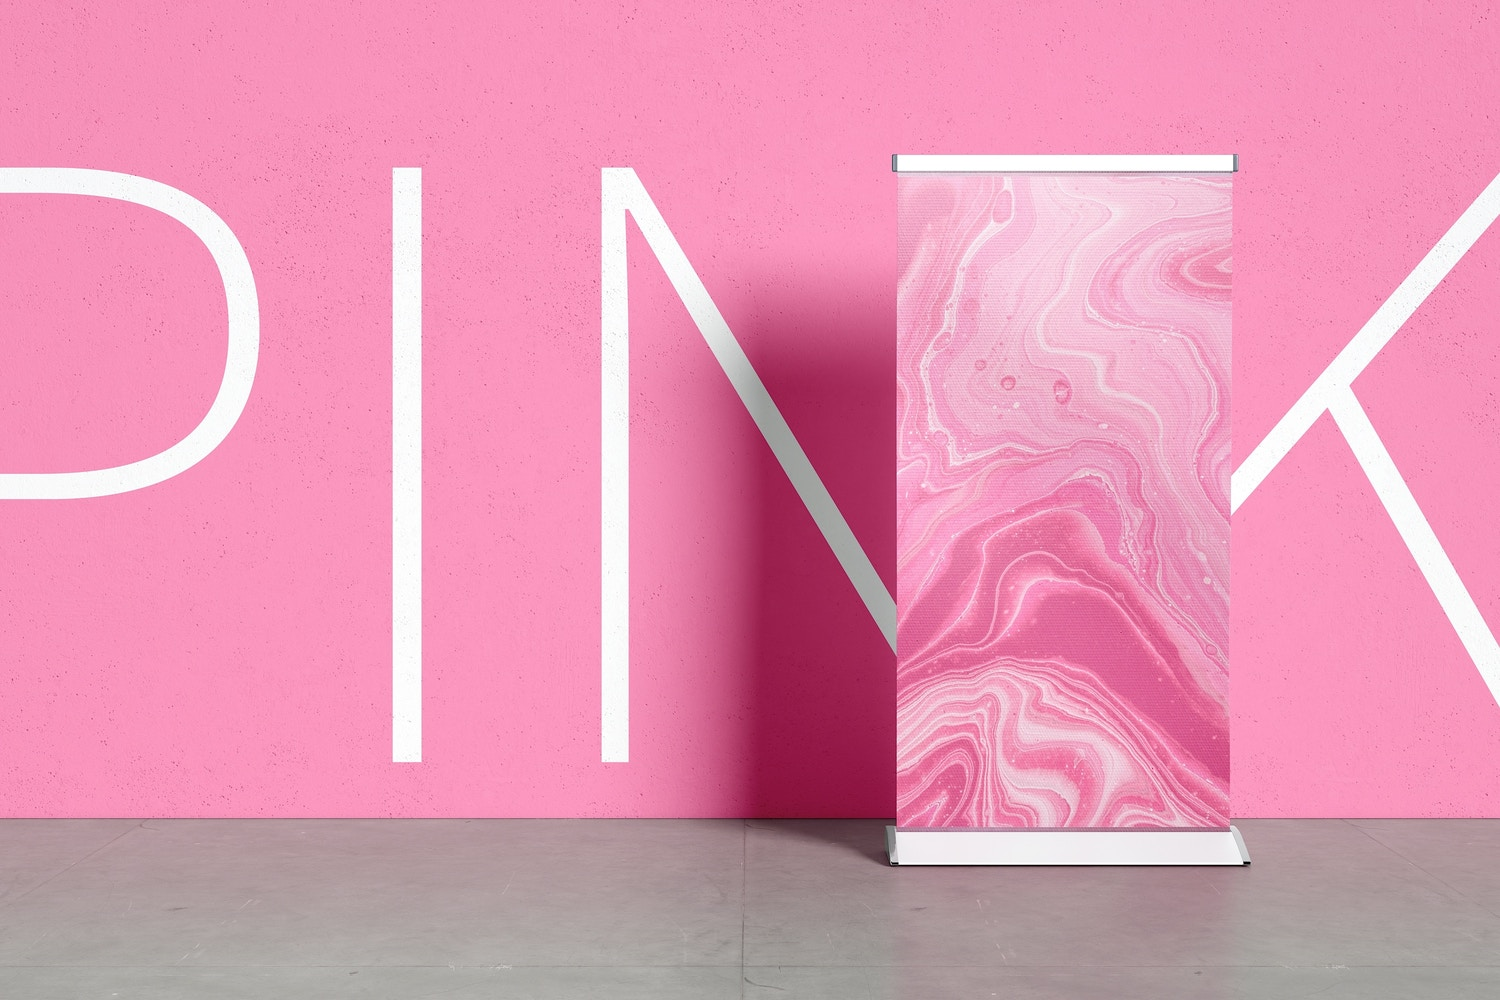 Use the background wall to place any design that complements the banner mockup